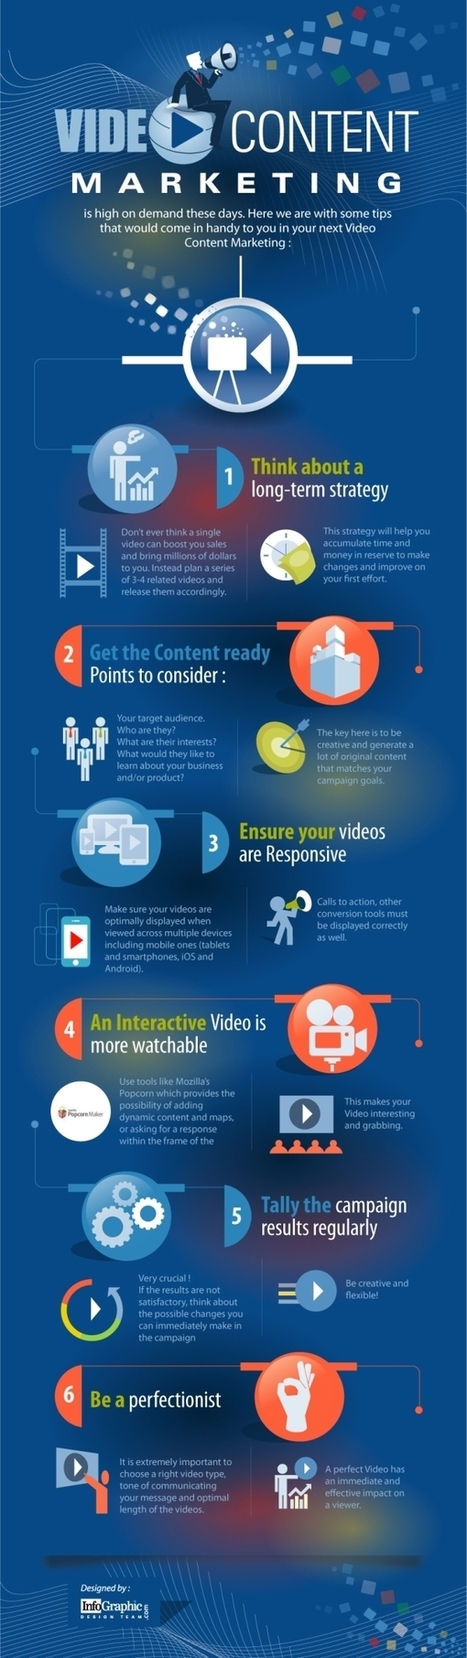 Why You Shouldn't Ignore Video Content Marketing in 2014 [Infographic] | SEO, social media, e-marketing | Scoop.it